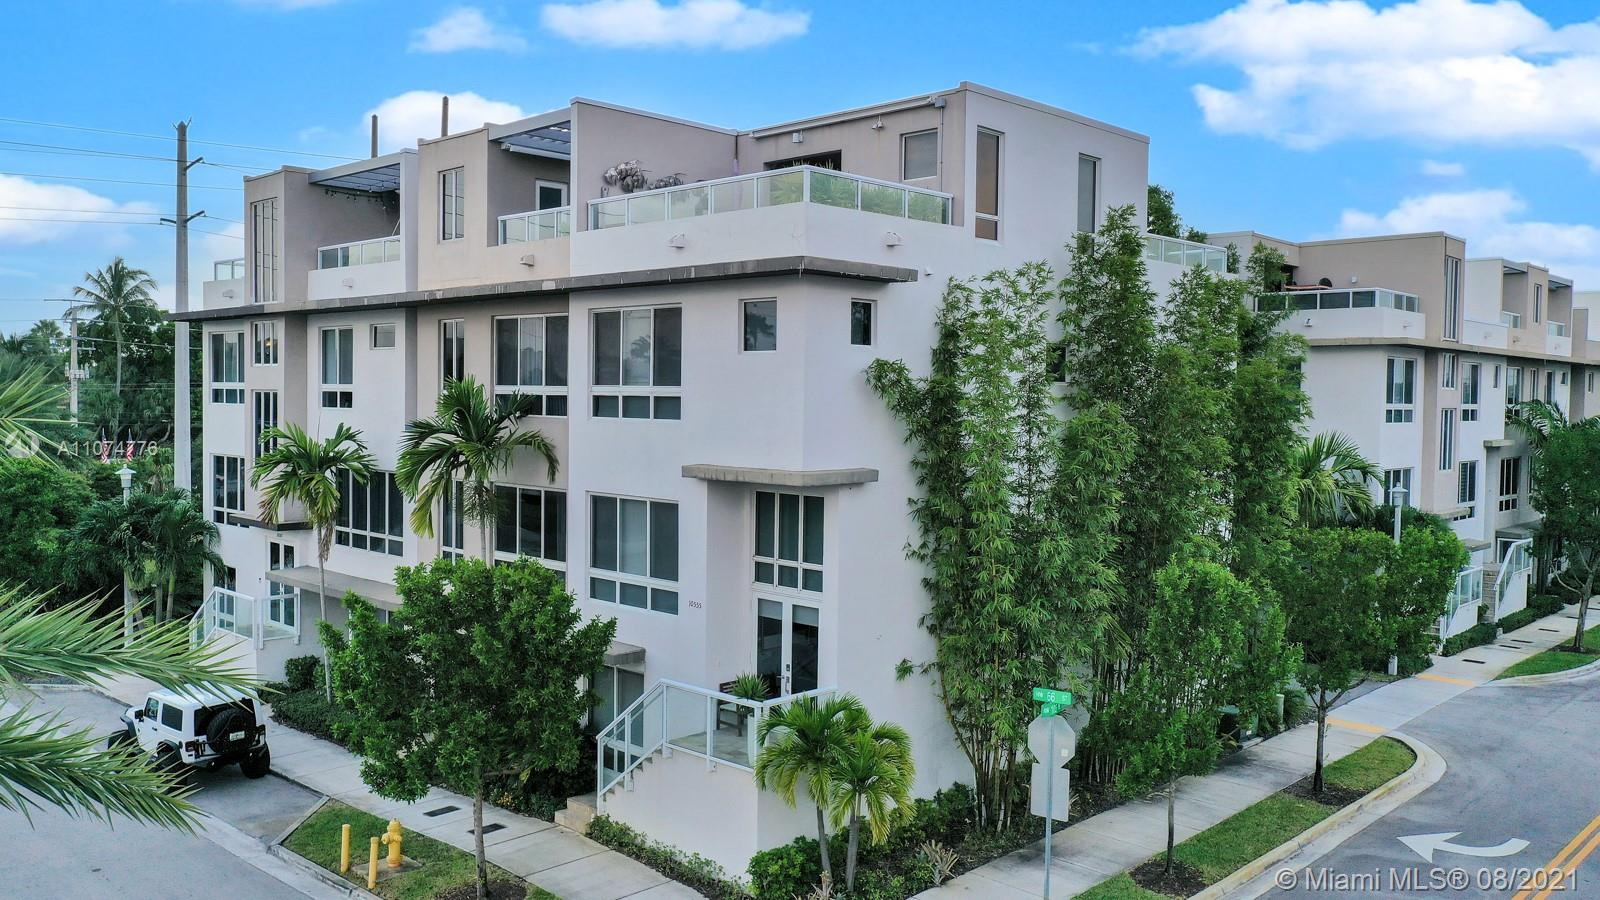 Model home corner unit 3 level with terrace, elevator, semi furniture, excellent location, 3 full bedrooms, 3 full baths, and 2 1.2 baths, Appliances SS, quartz countertop, wood cabinets, Included BB-Q en great view from a terrace. Cosmo-chic community gorgeous amenities to family enjoy.